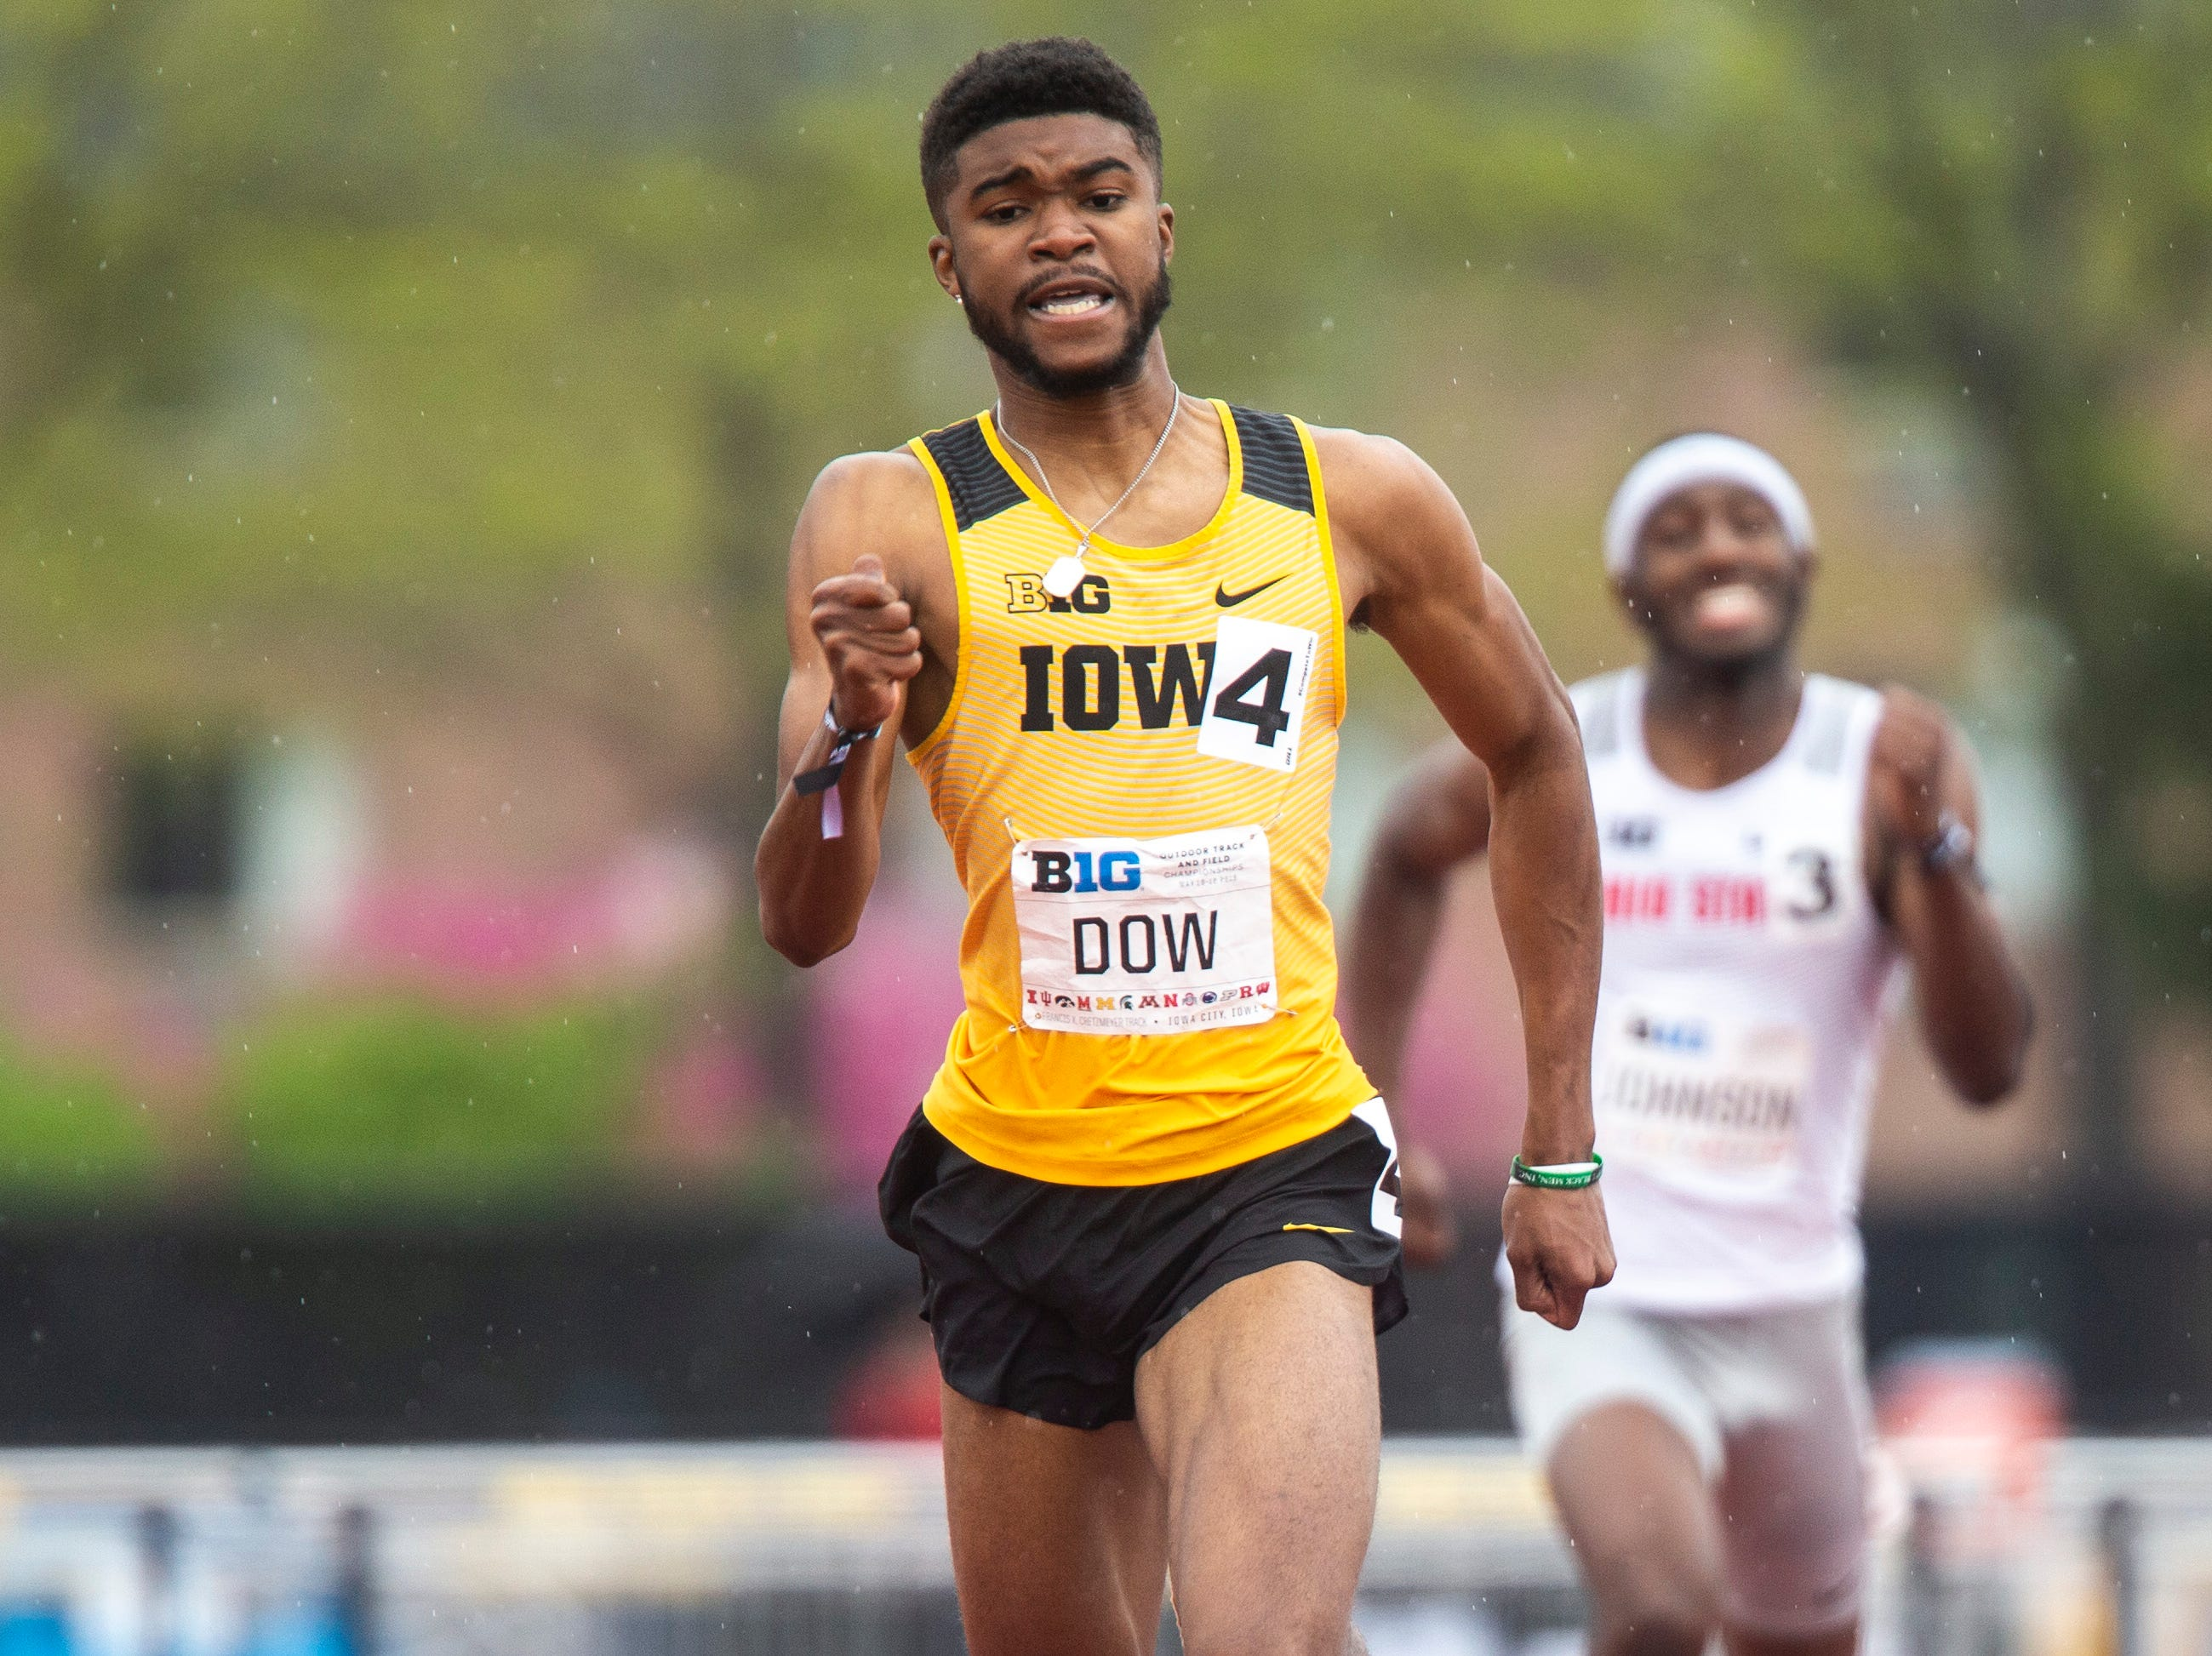 Iowa freshman Raymonte Dow competes in the 400 meter hurdles during the final day of Big Ten track and field outdoor championships, Sunday, May 12, 2019, at Francis X. Cretzmeyer Track on the University of Iowa campus in Iowa City, Iowa. Dow finished third, with a time of 51.37.